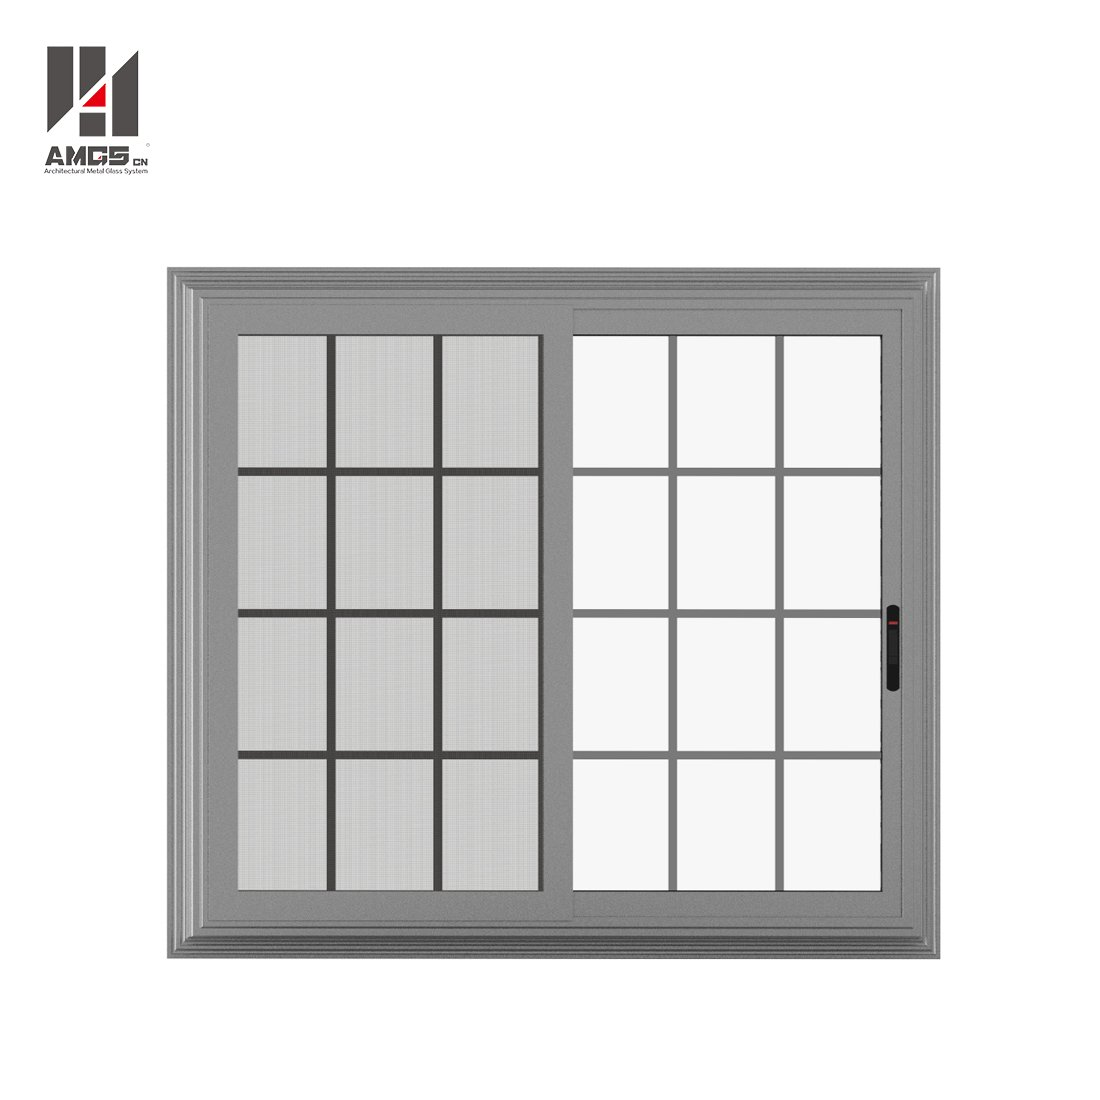 AMGS Aluminium Alloy Sliding Modern Window Grill Design With Powder Coating Aluminum Sliding Windows image11